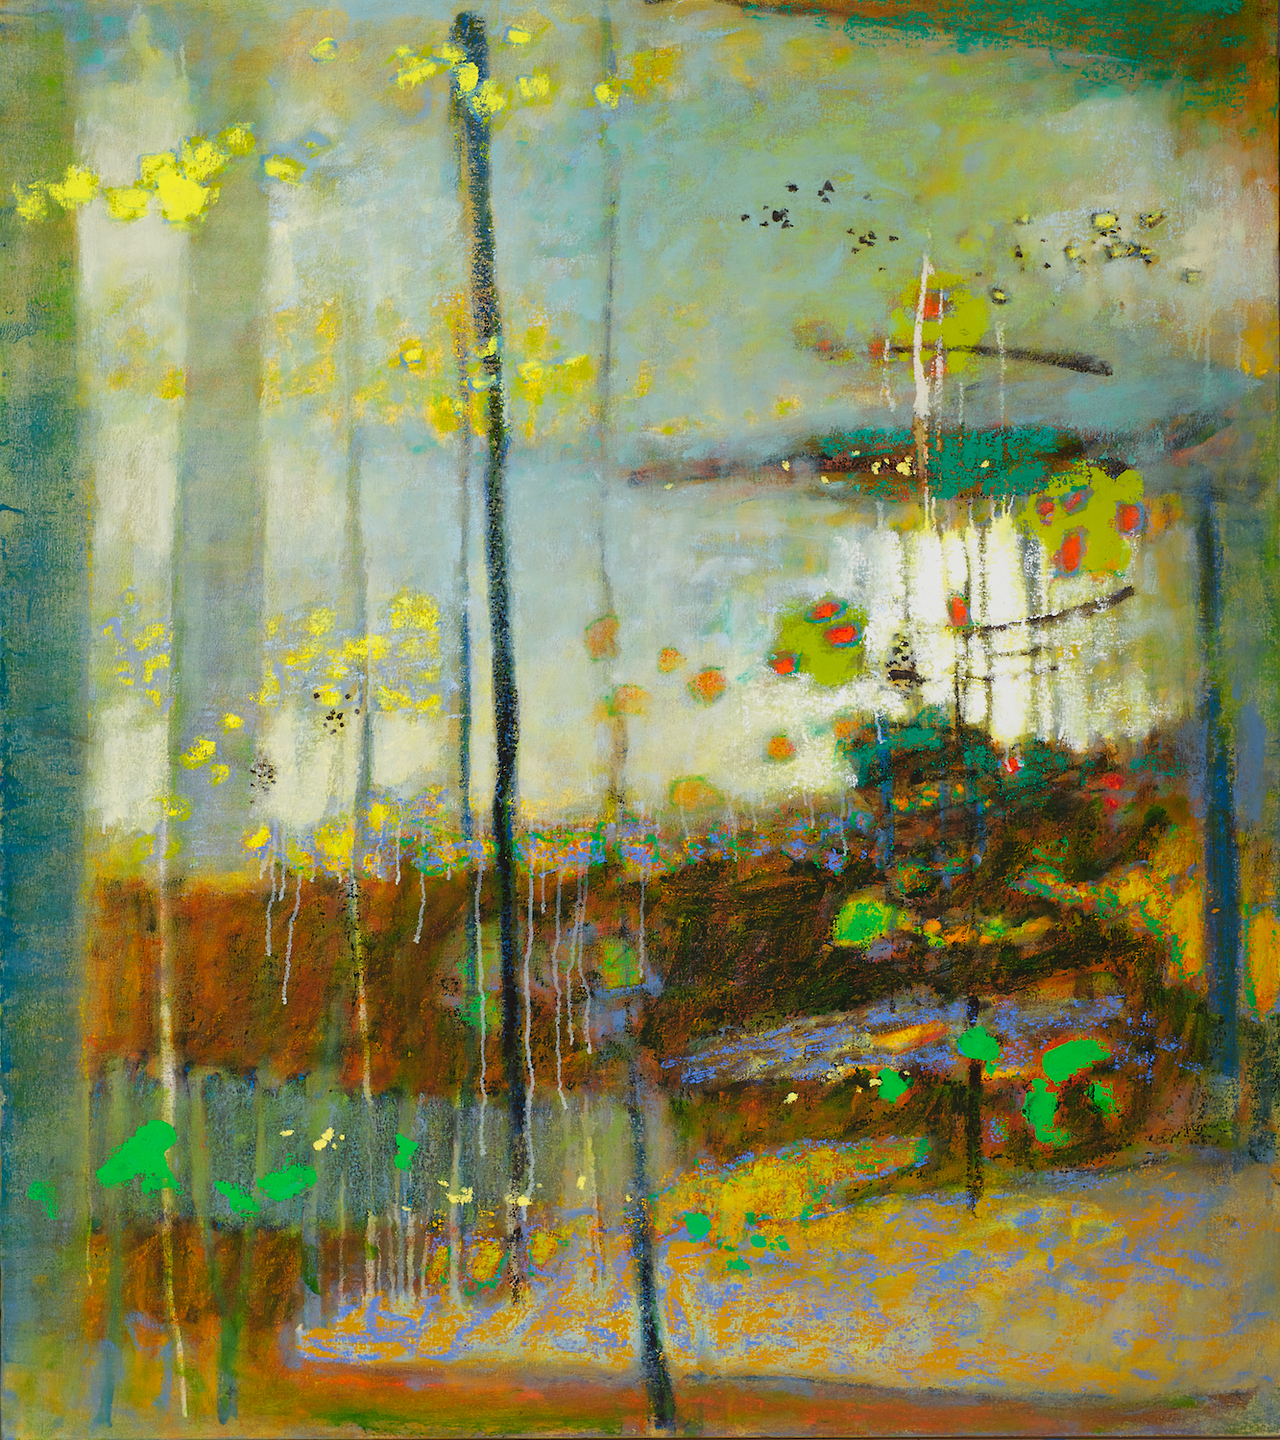 Sanctuary In Light   | oil on canvas | 54 x 48"